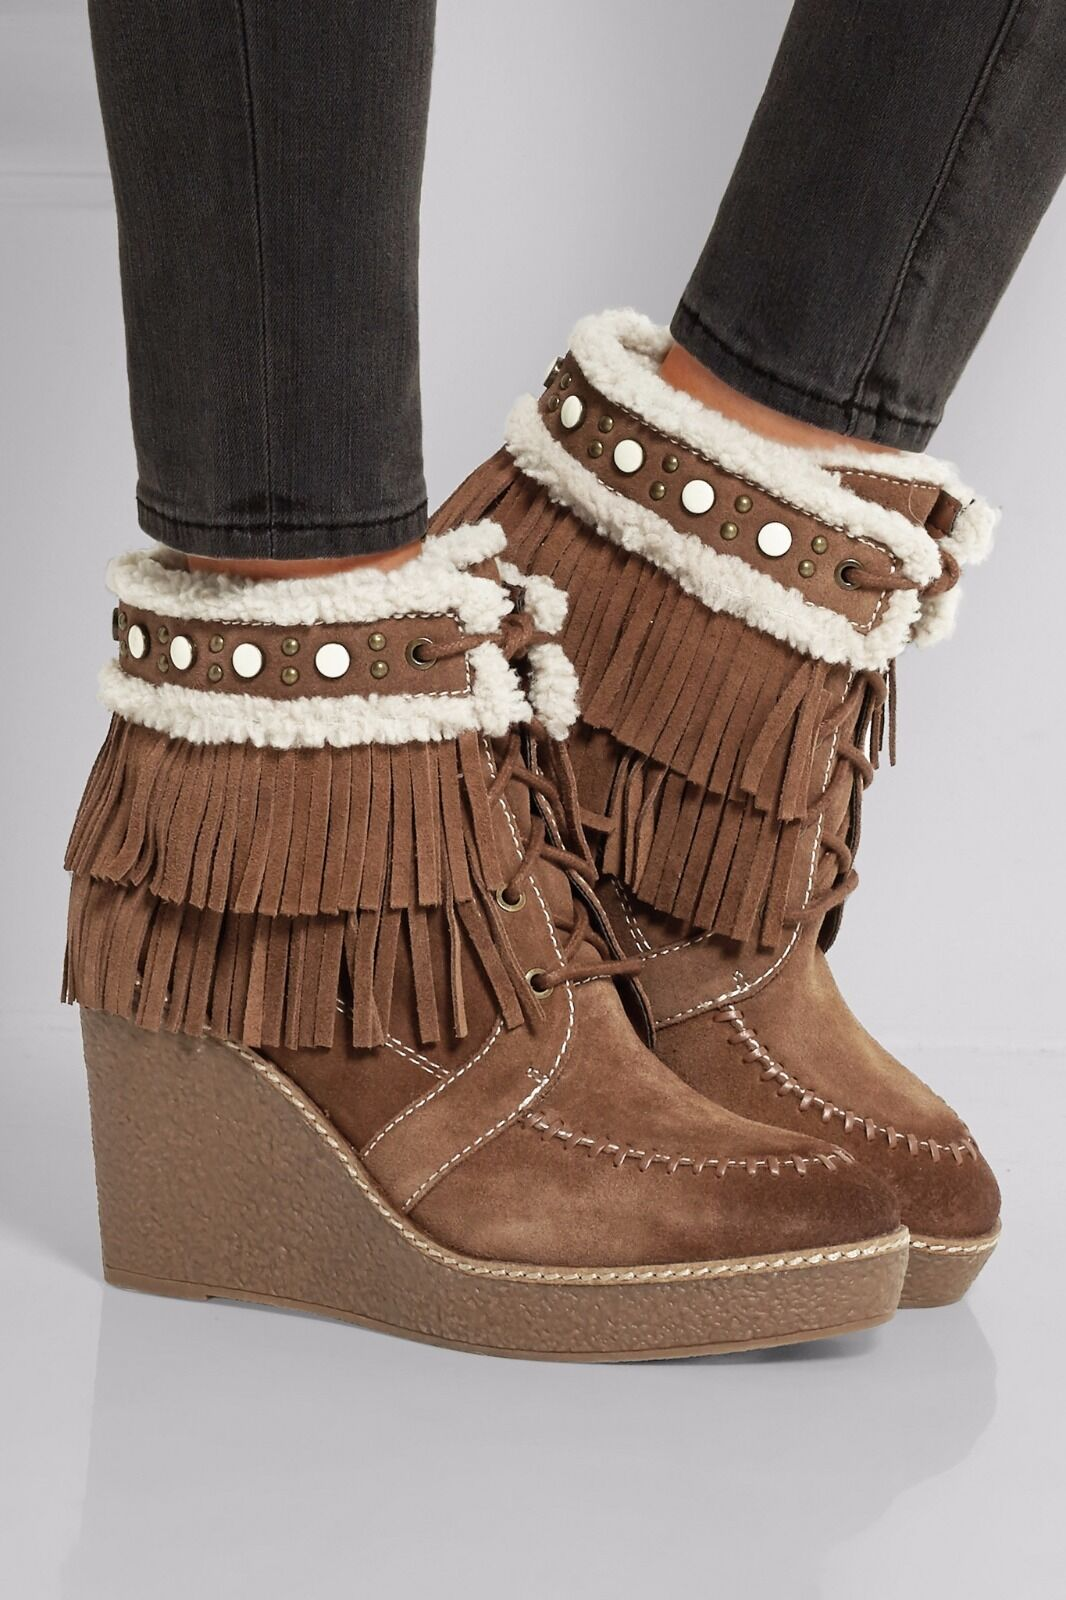 New Sam Edelman Kemper Faux Shearling-lined Fringed 4.5 Suede Wedge Boot 4.5 Fringed  150 cb381a